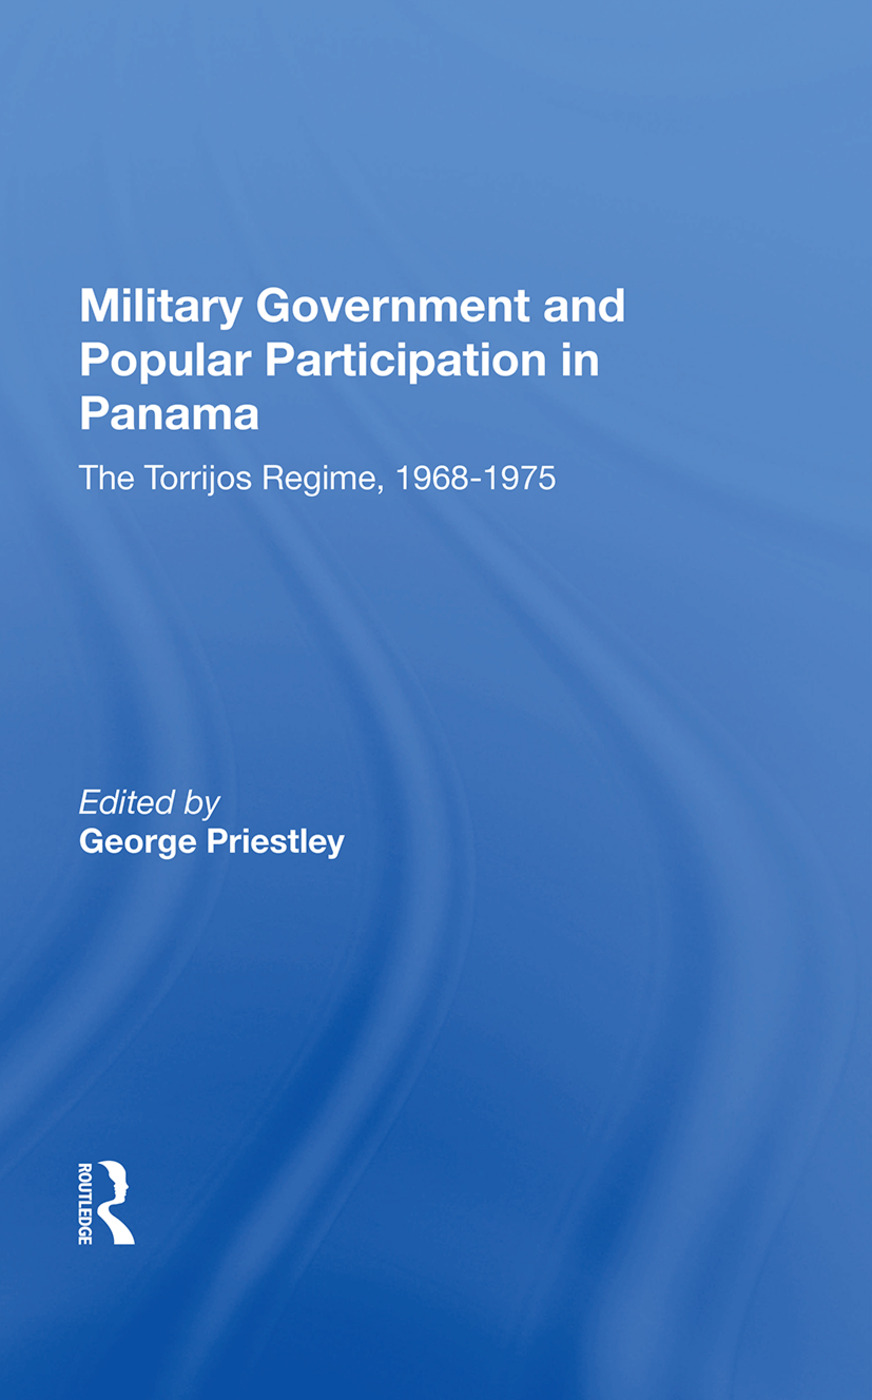 Military Government And Popular Participation In Panama: The Torrijos Regime, 1968-1975 book cover